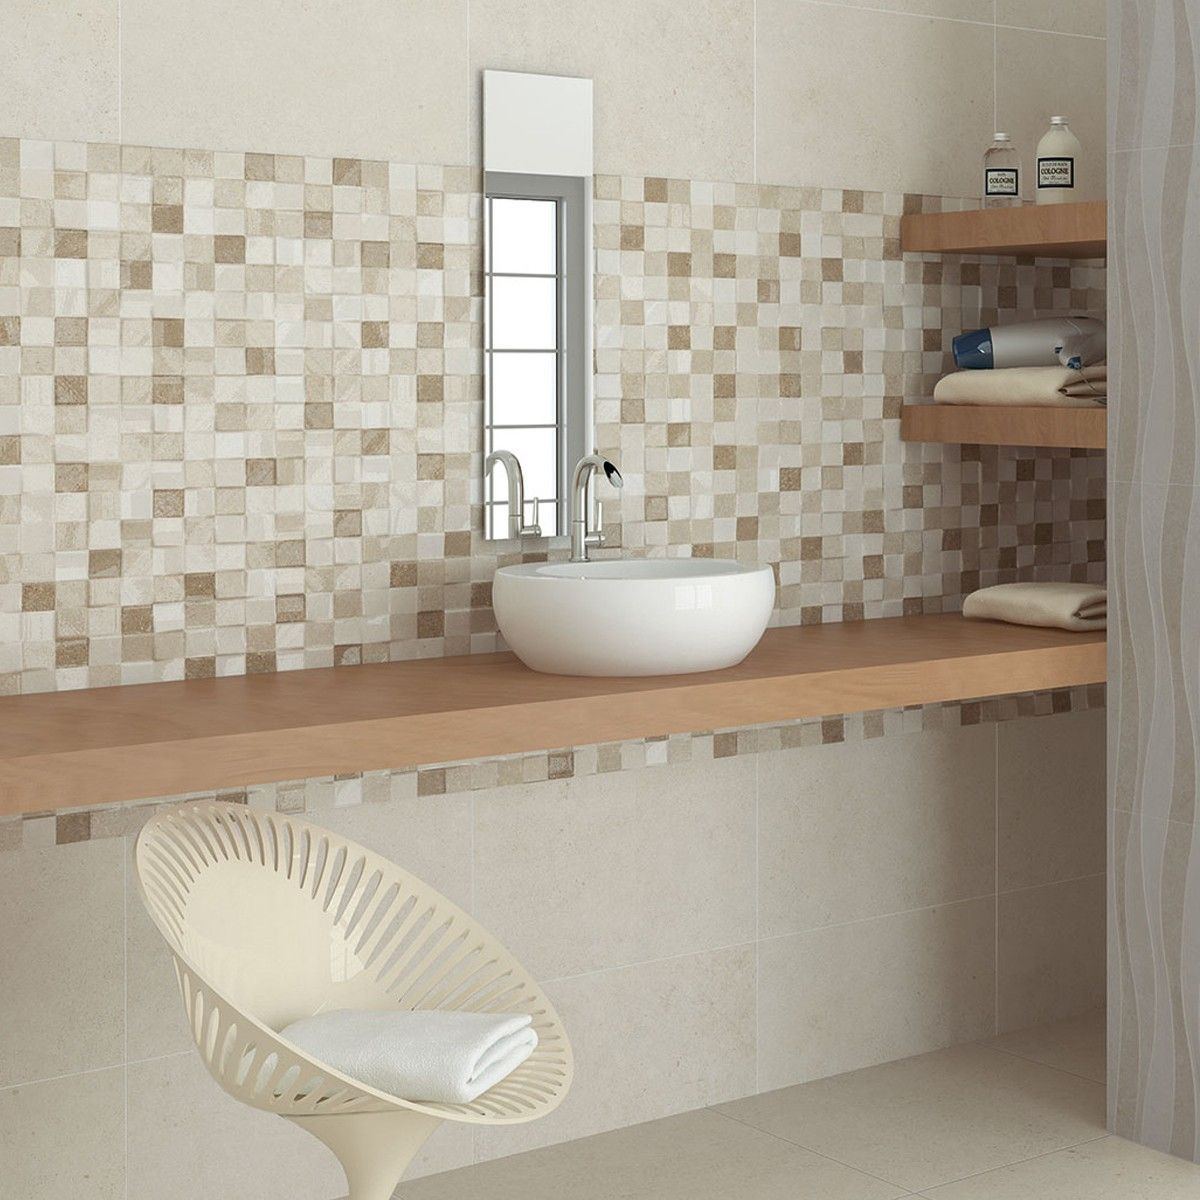 Awesome Zelve Bathroom Tiles No Bathroom Is Complete Without A